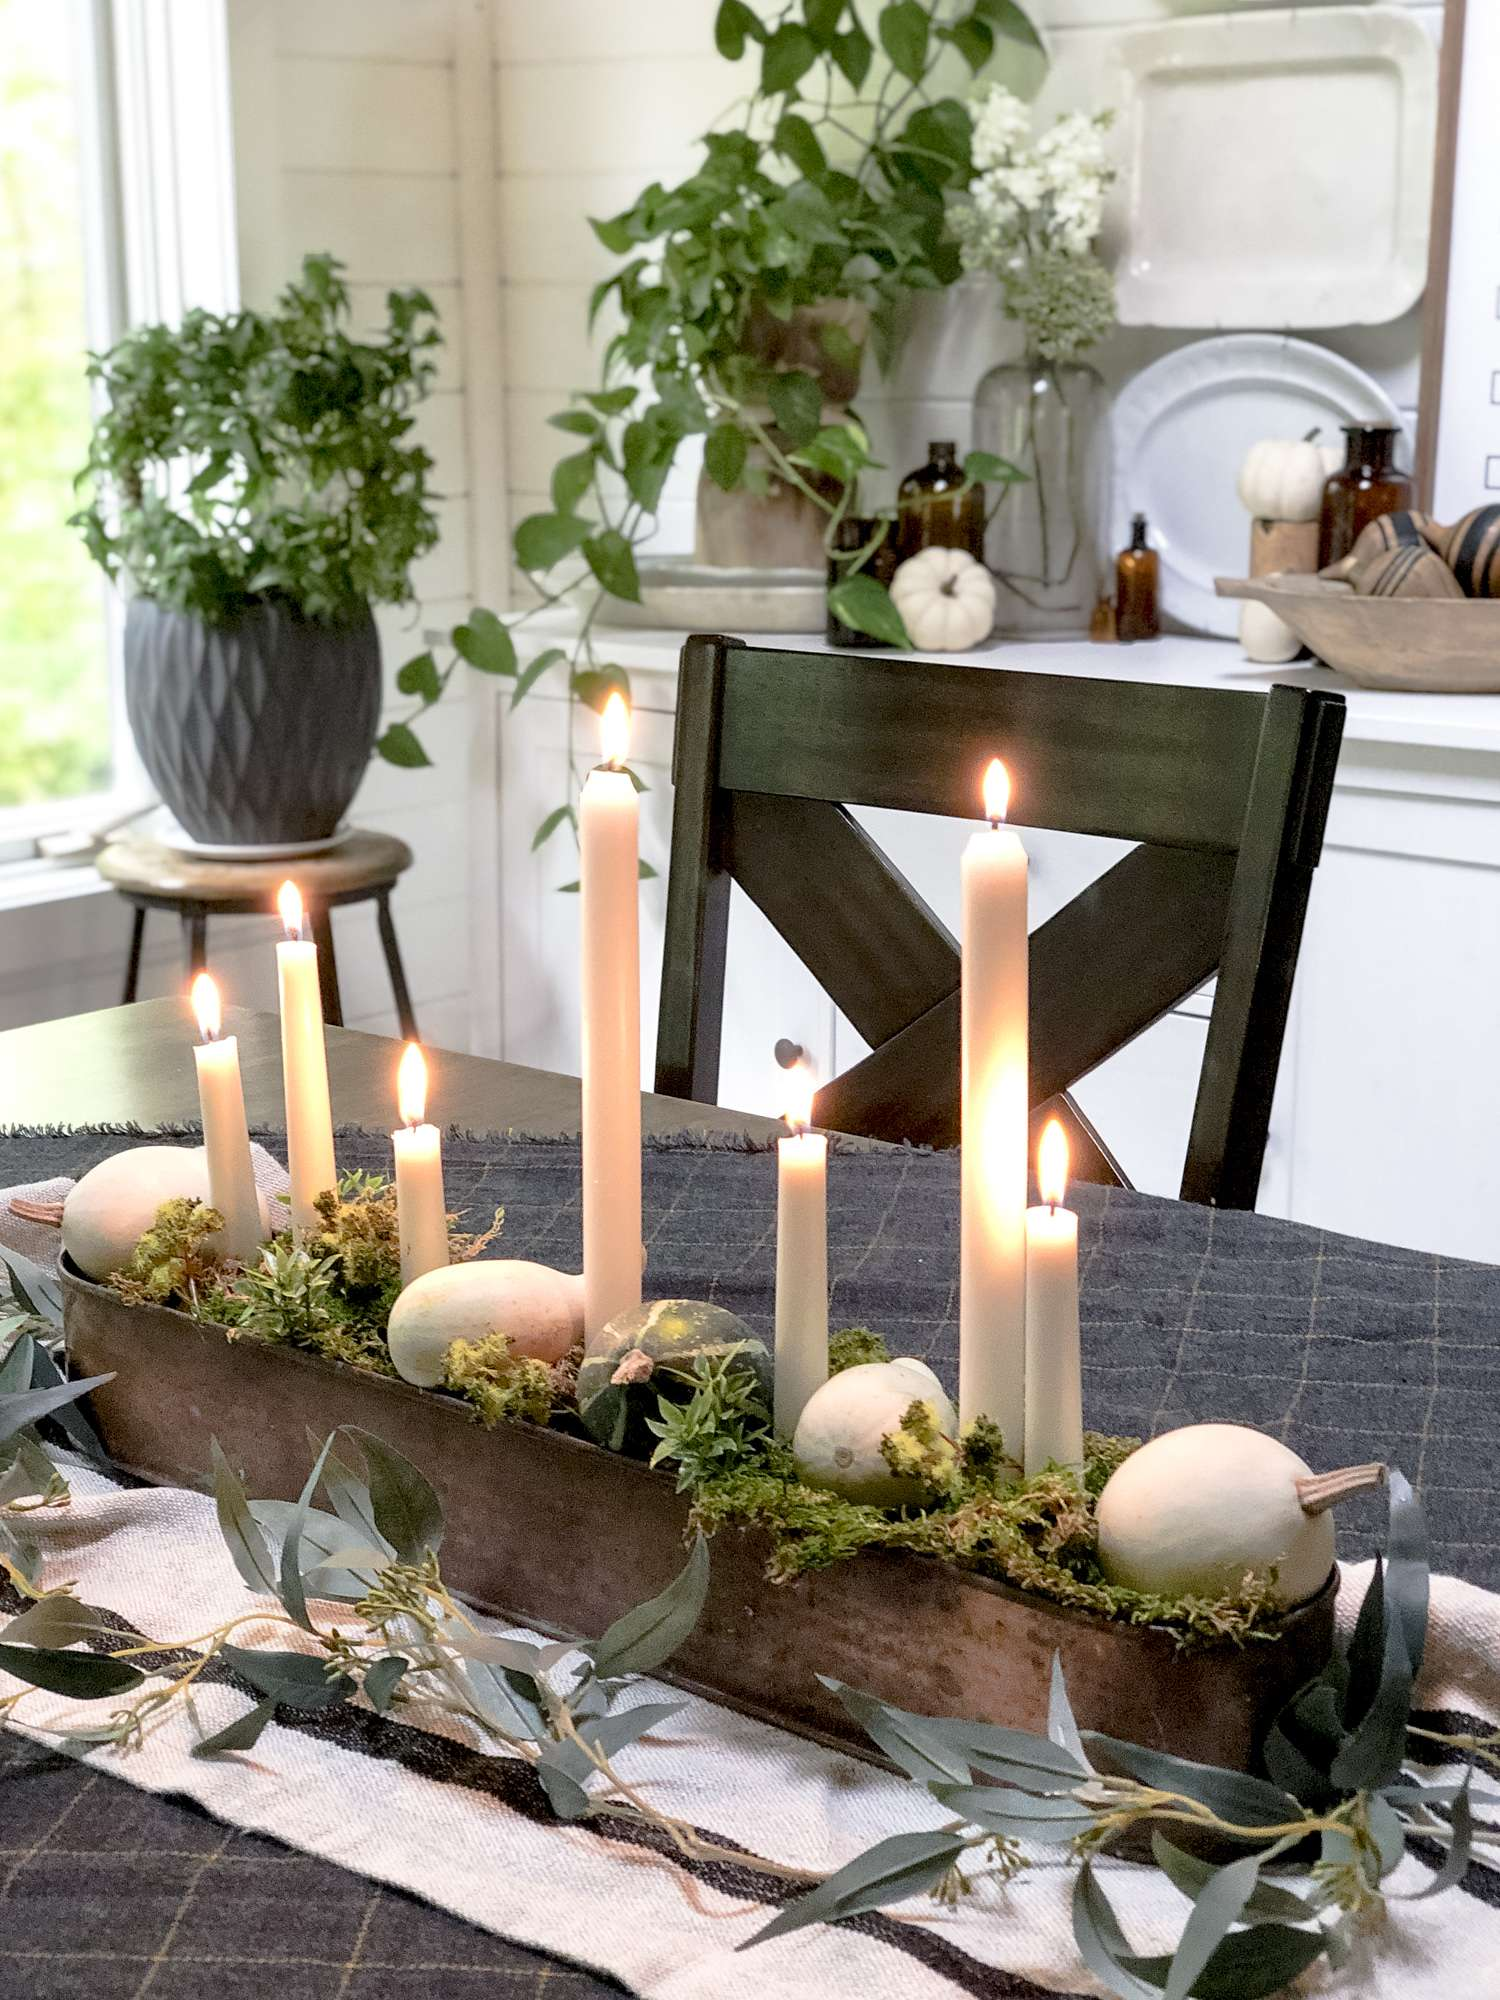 DIY Candelabra Tutorial